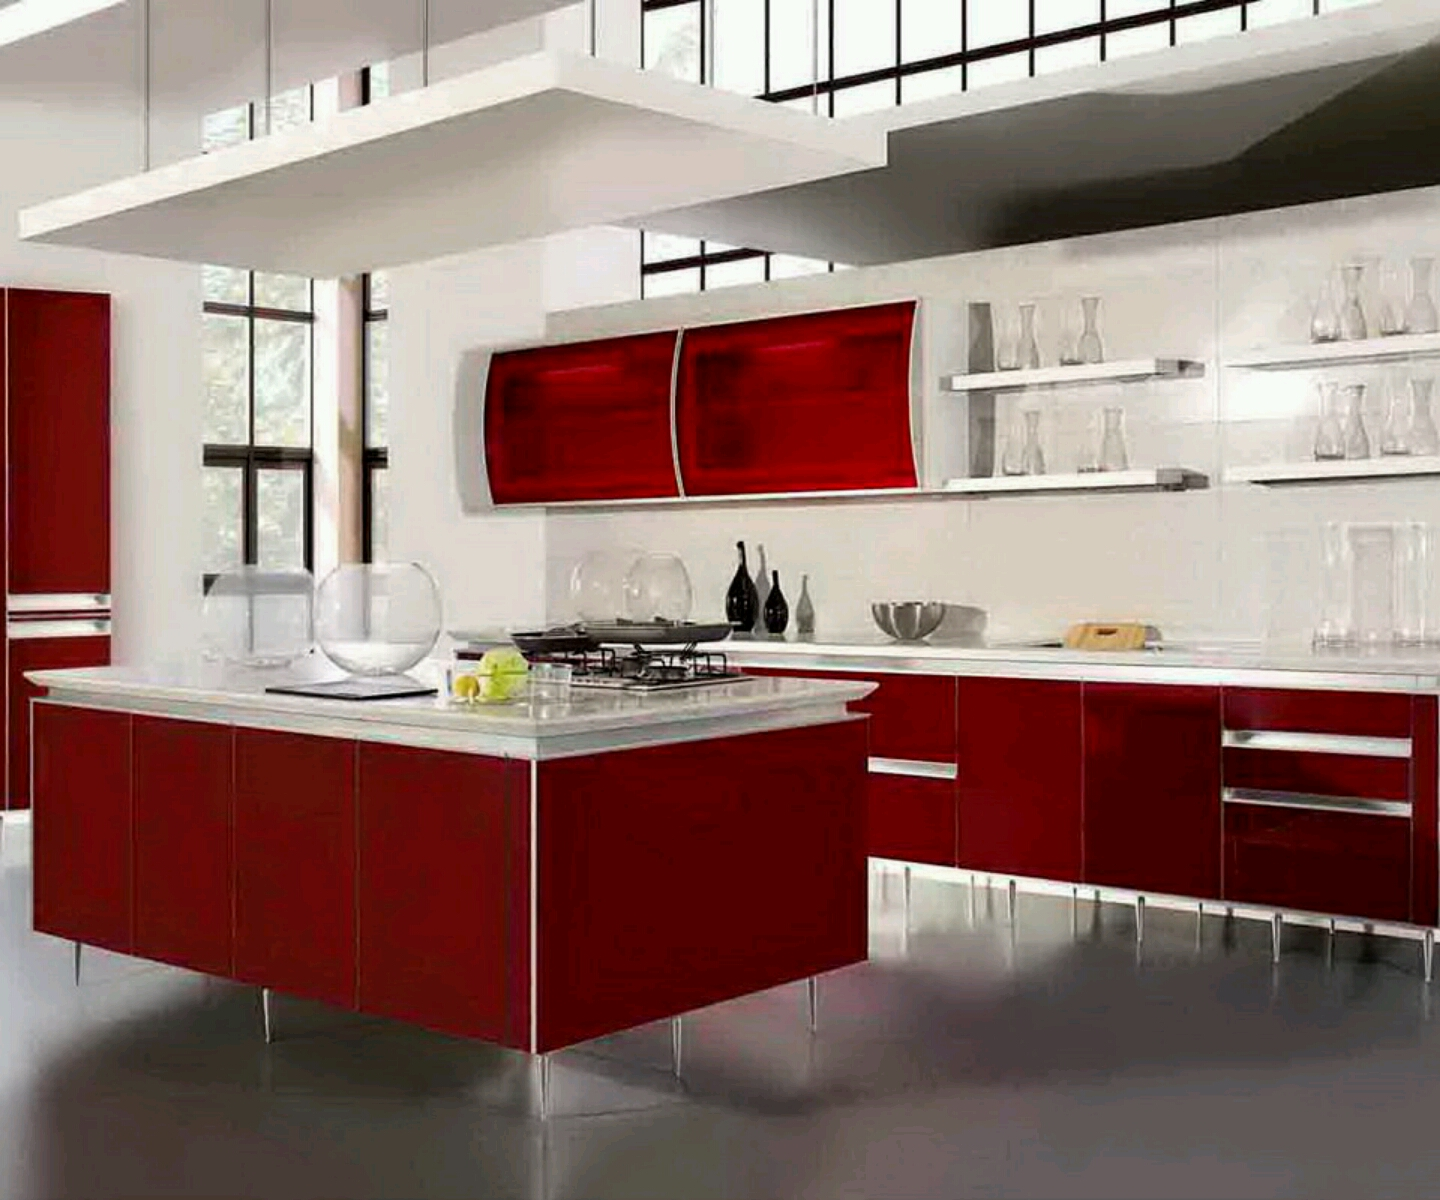 new ideas for kitchens on New home designs latest.: Ultra modern kitchen designs ideas.